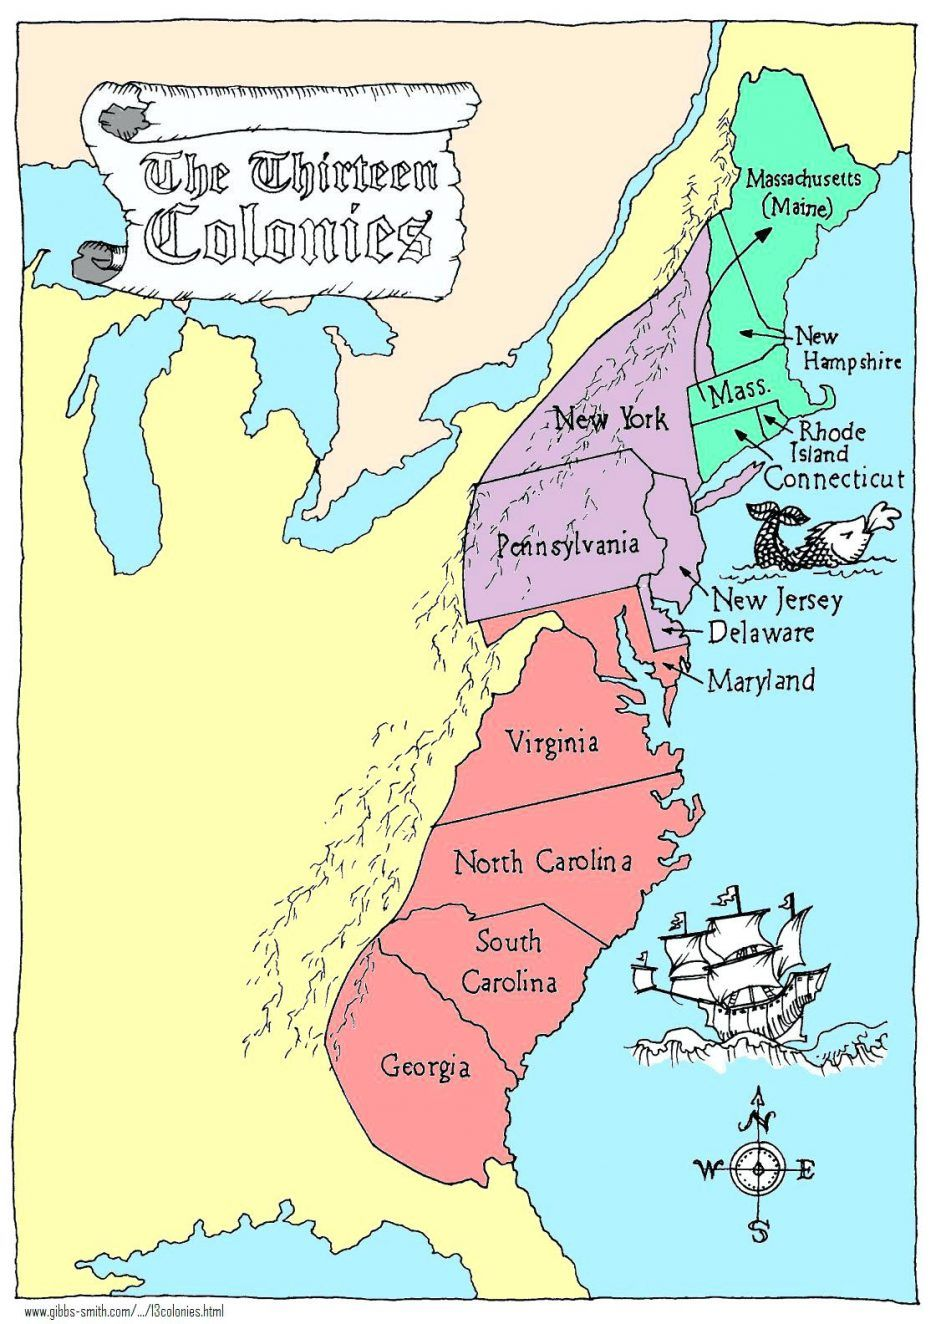 Coloring Pages: 13 Colonies Map Printable Labeled With Cities Blank on